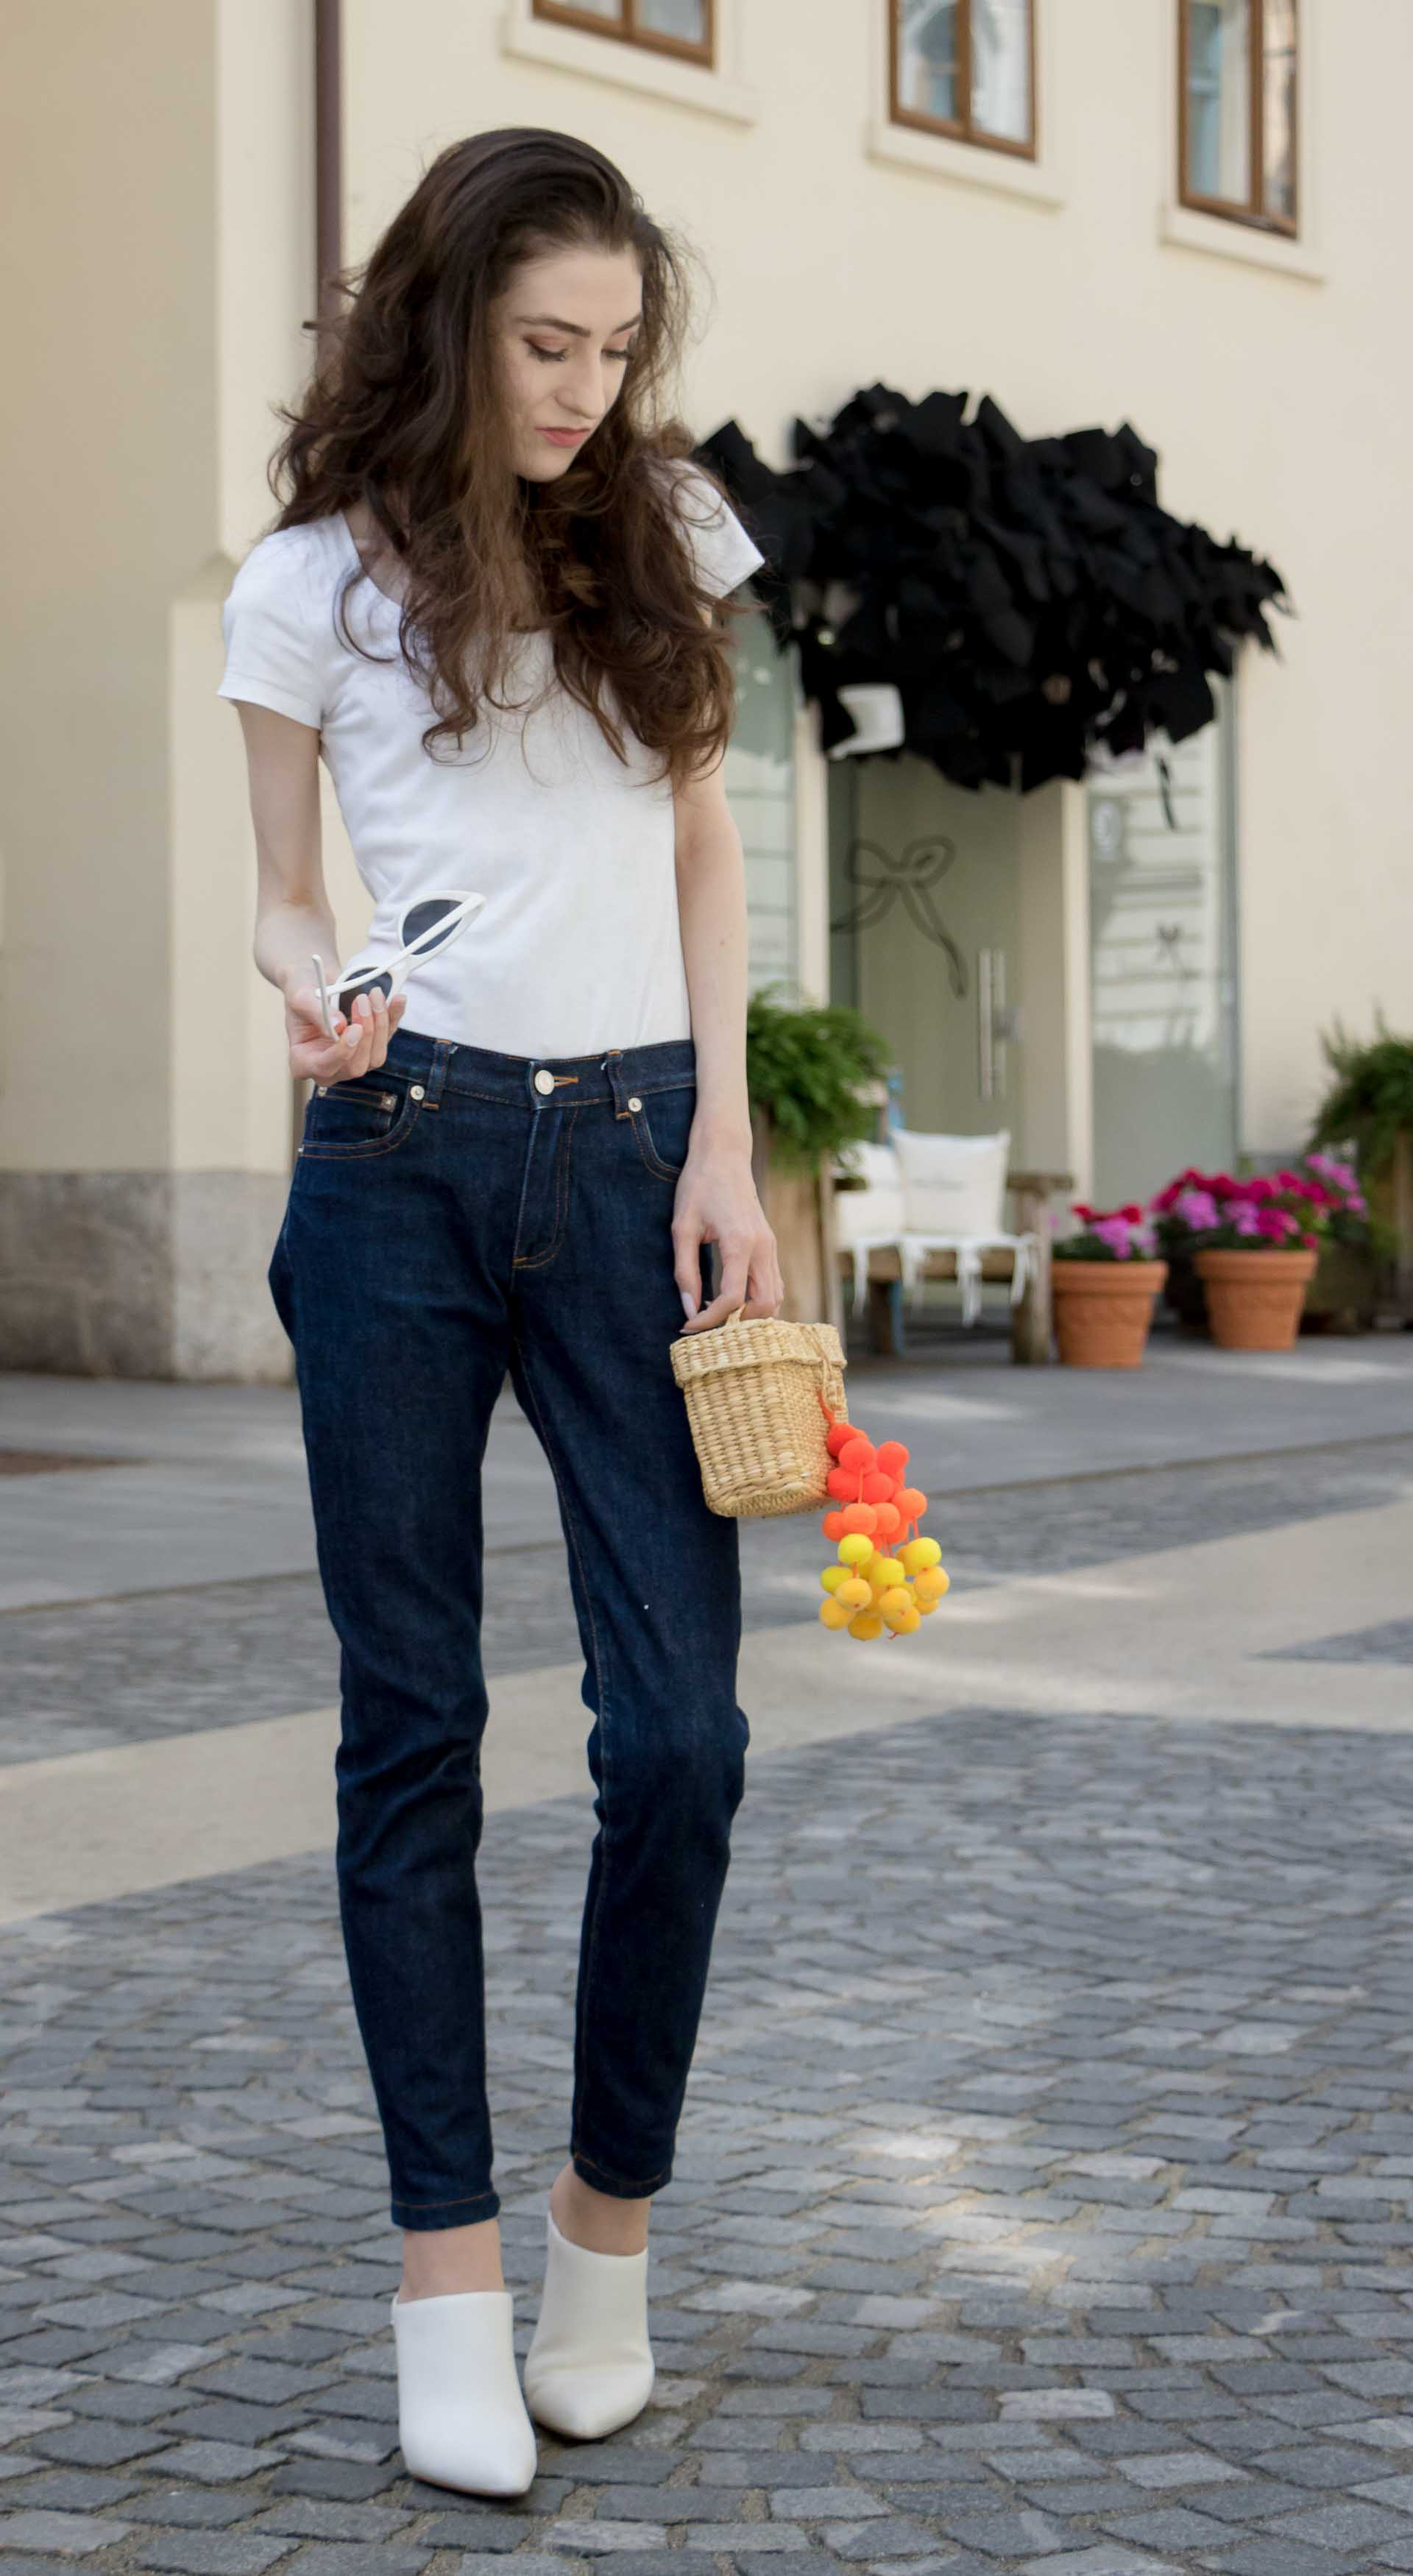 Veronika Lipar Fashion Editor of Brunette from Wall Street wearing dark blue tapered jeans from A.P.C., H&M white T-shirt, Nannacay basket bag, white mules and Adam Selman x Le Specs white cat eye Lolita sunglasses on the street